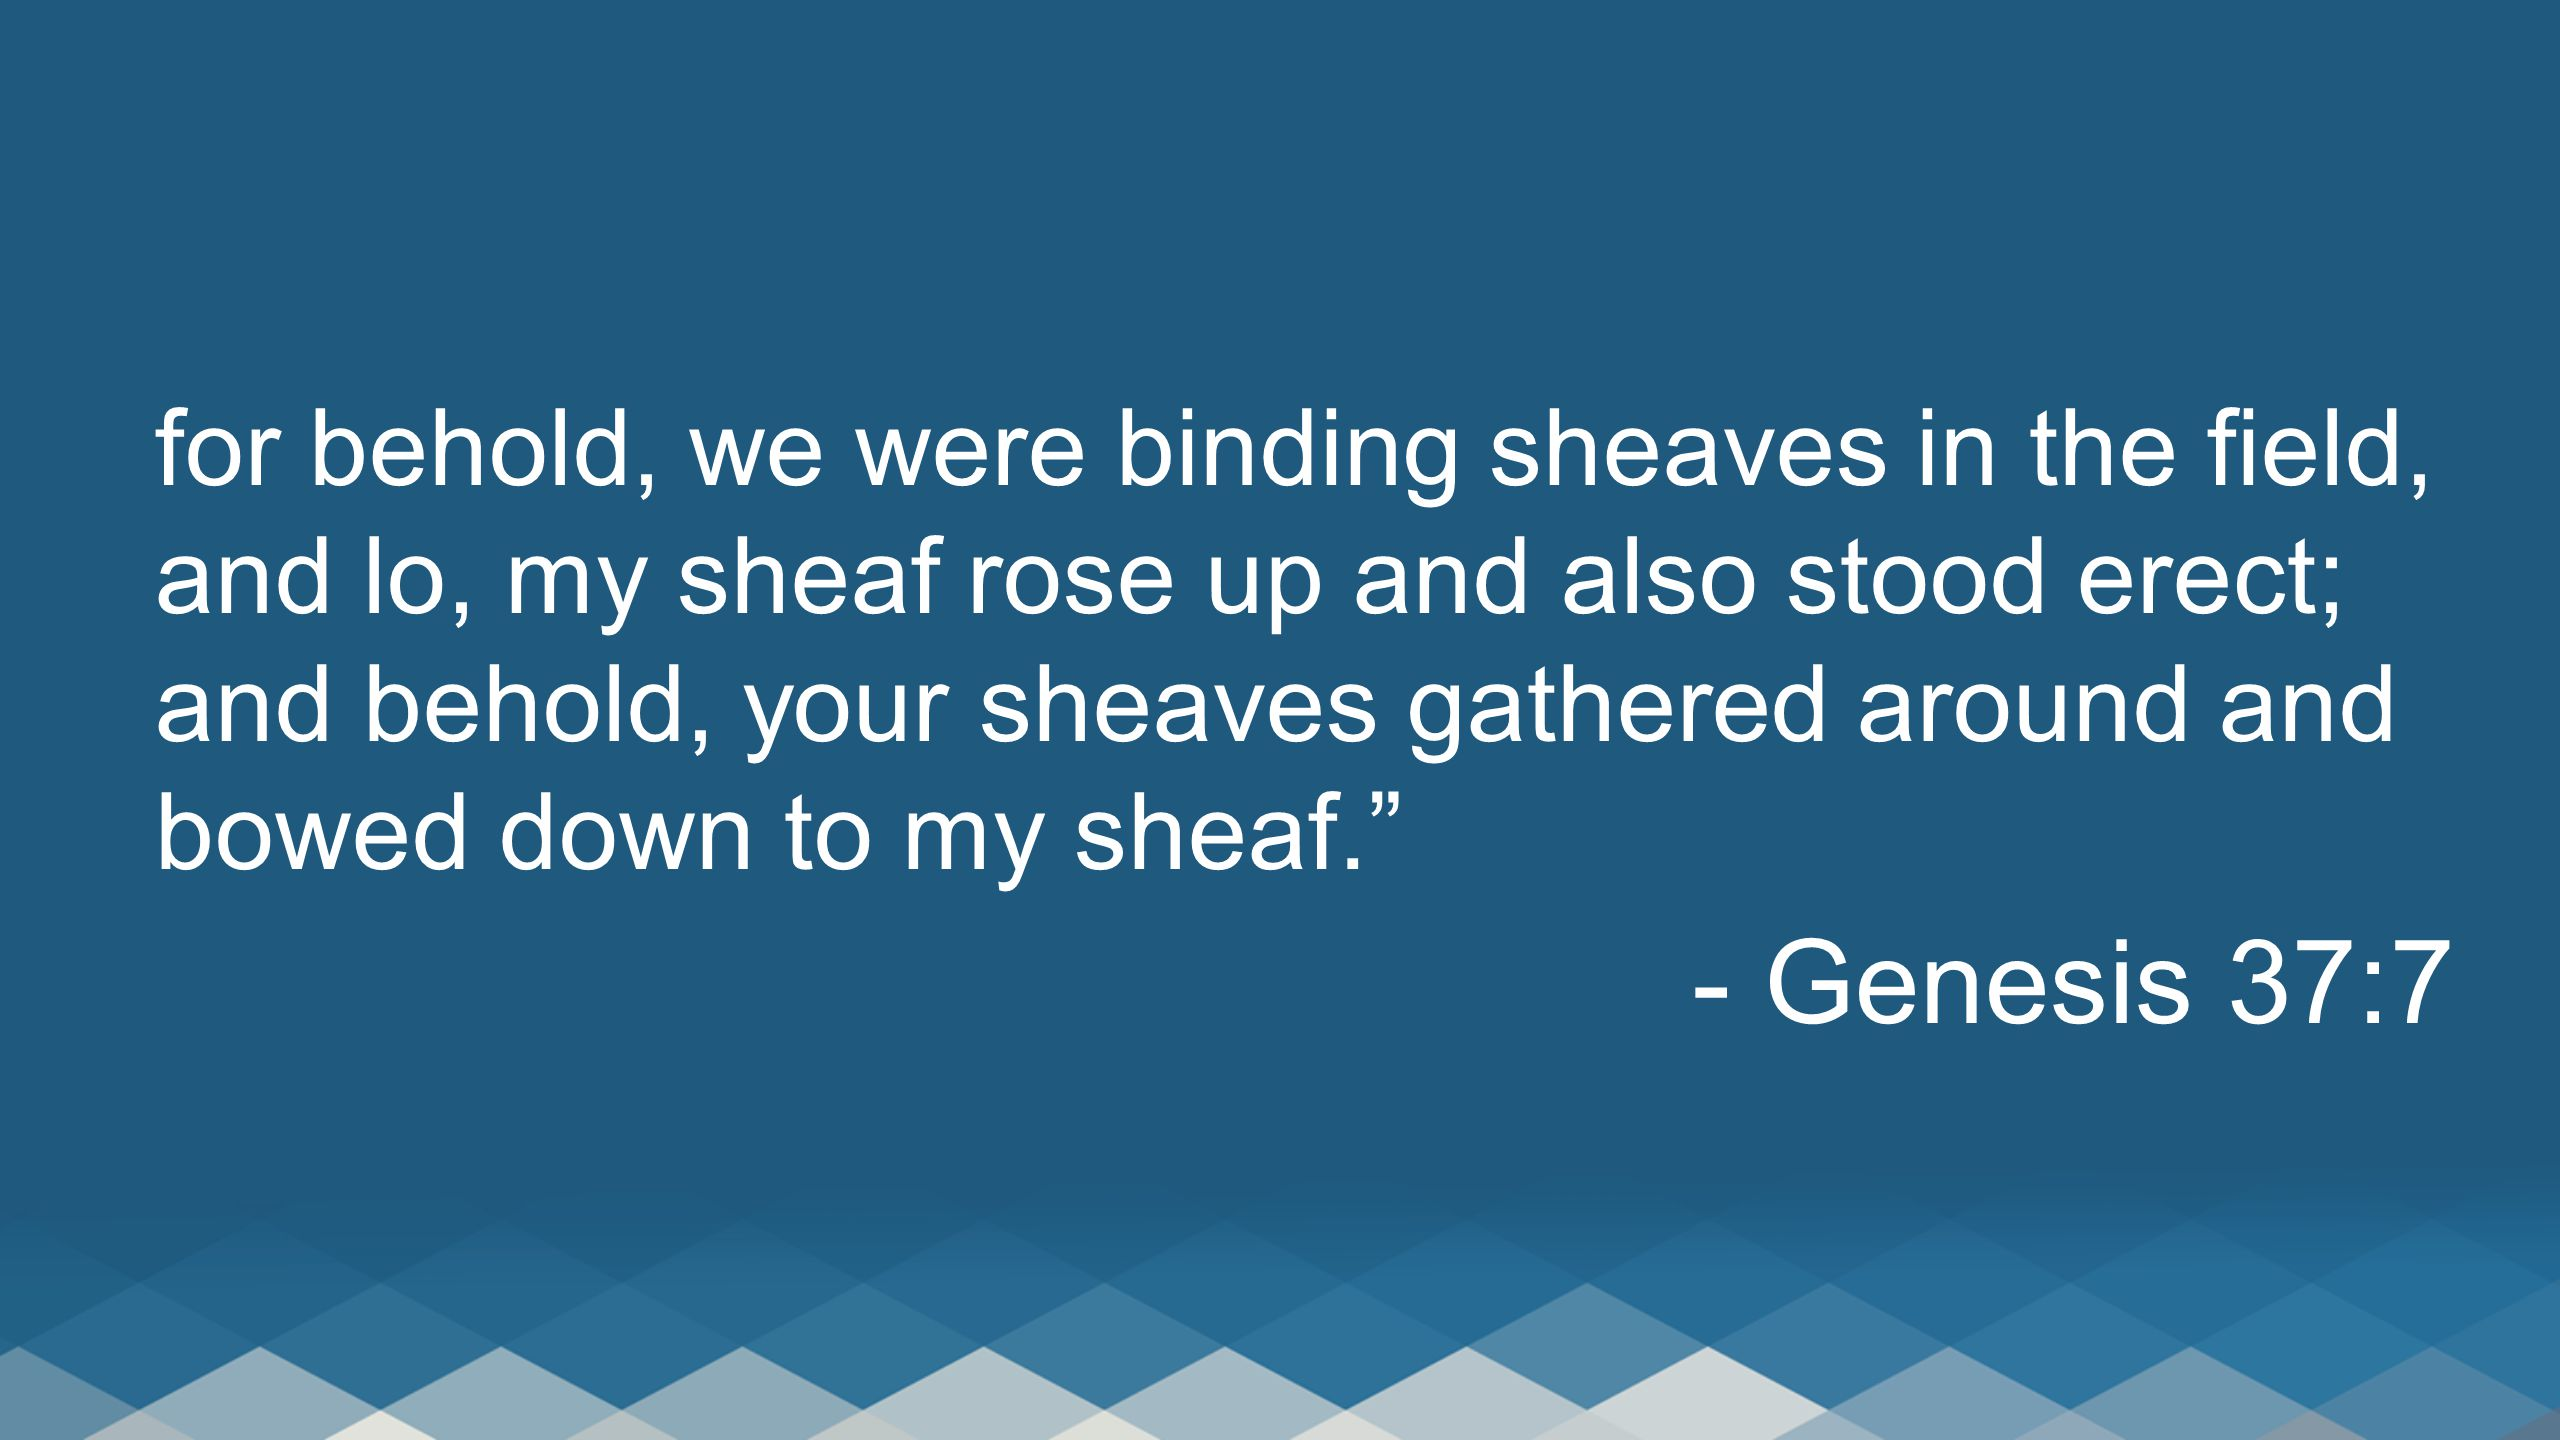 for behold, we were binding sheaves in the field, and lo, my sheaf rose up and also stood erect; and behold, your sheaves gathered around and bowed down to my sheaf. - Genesis 37:7